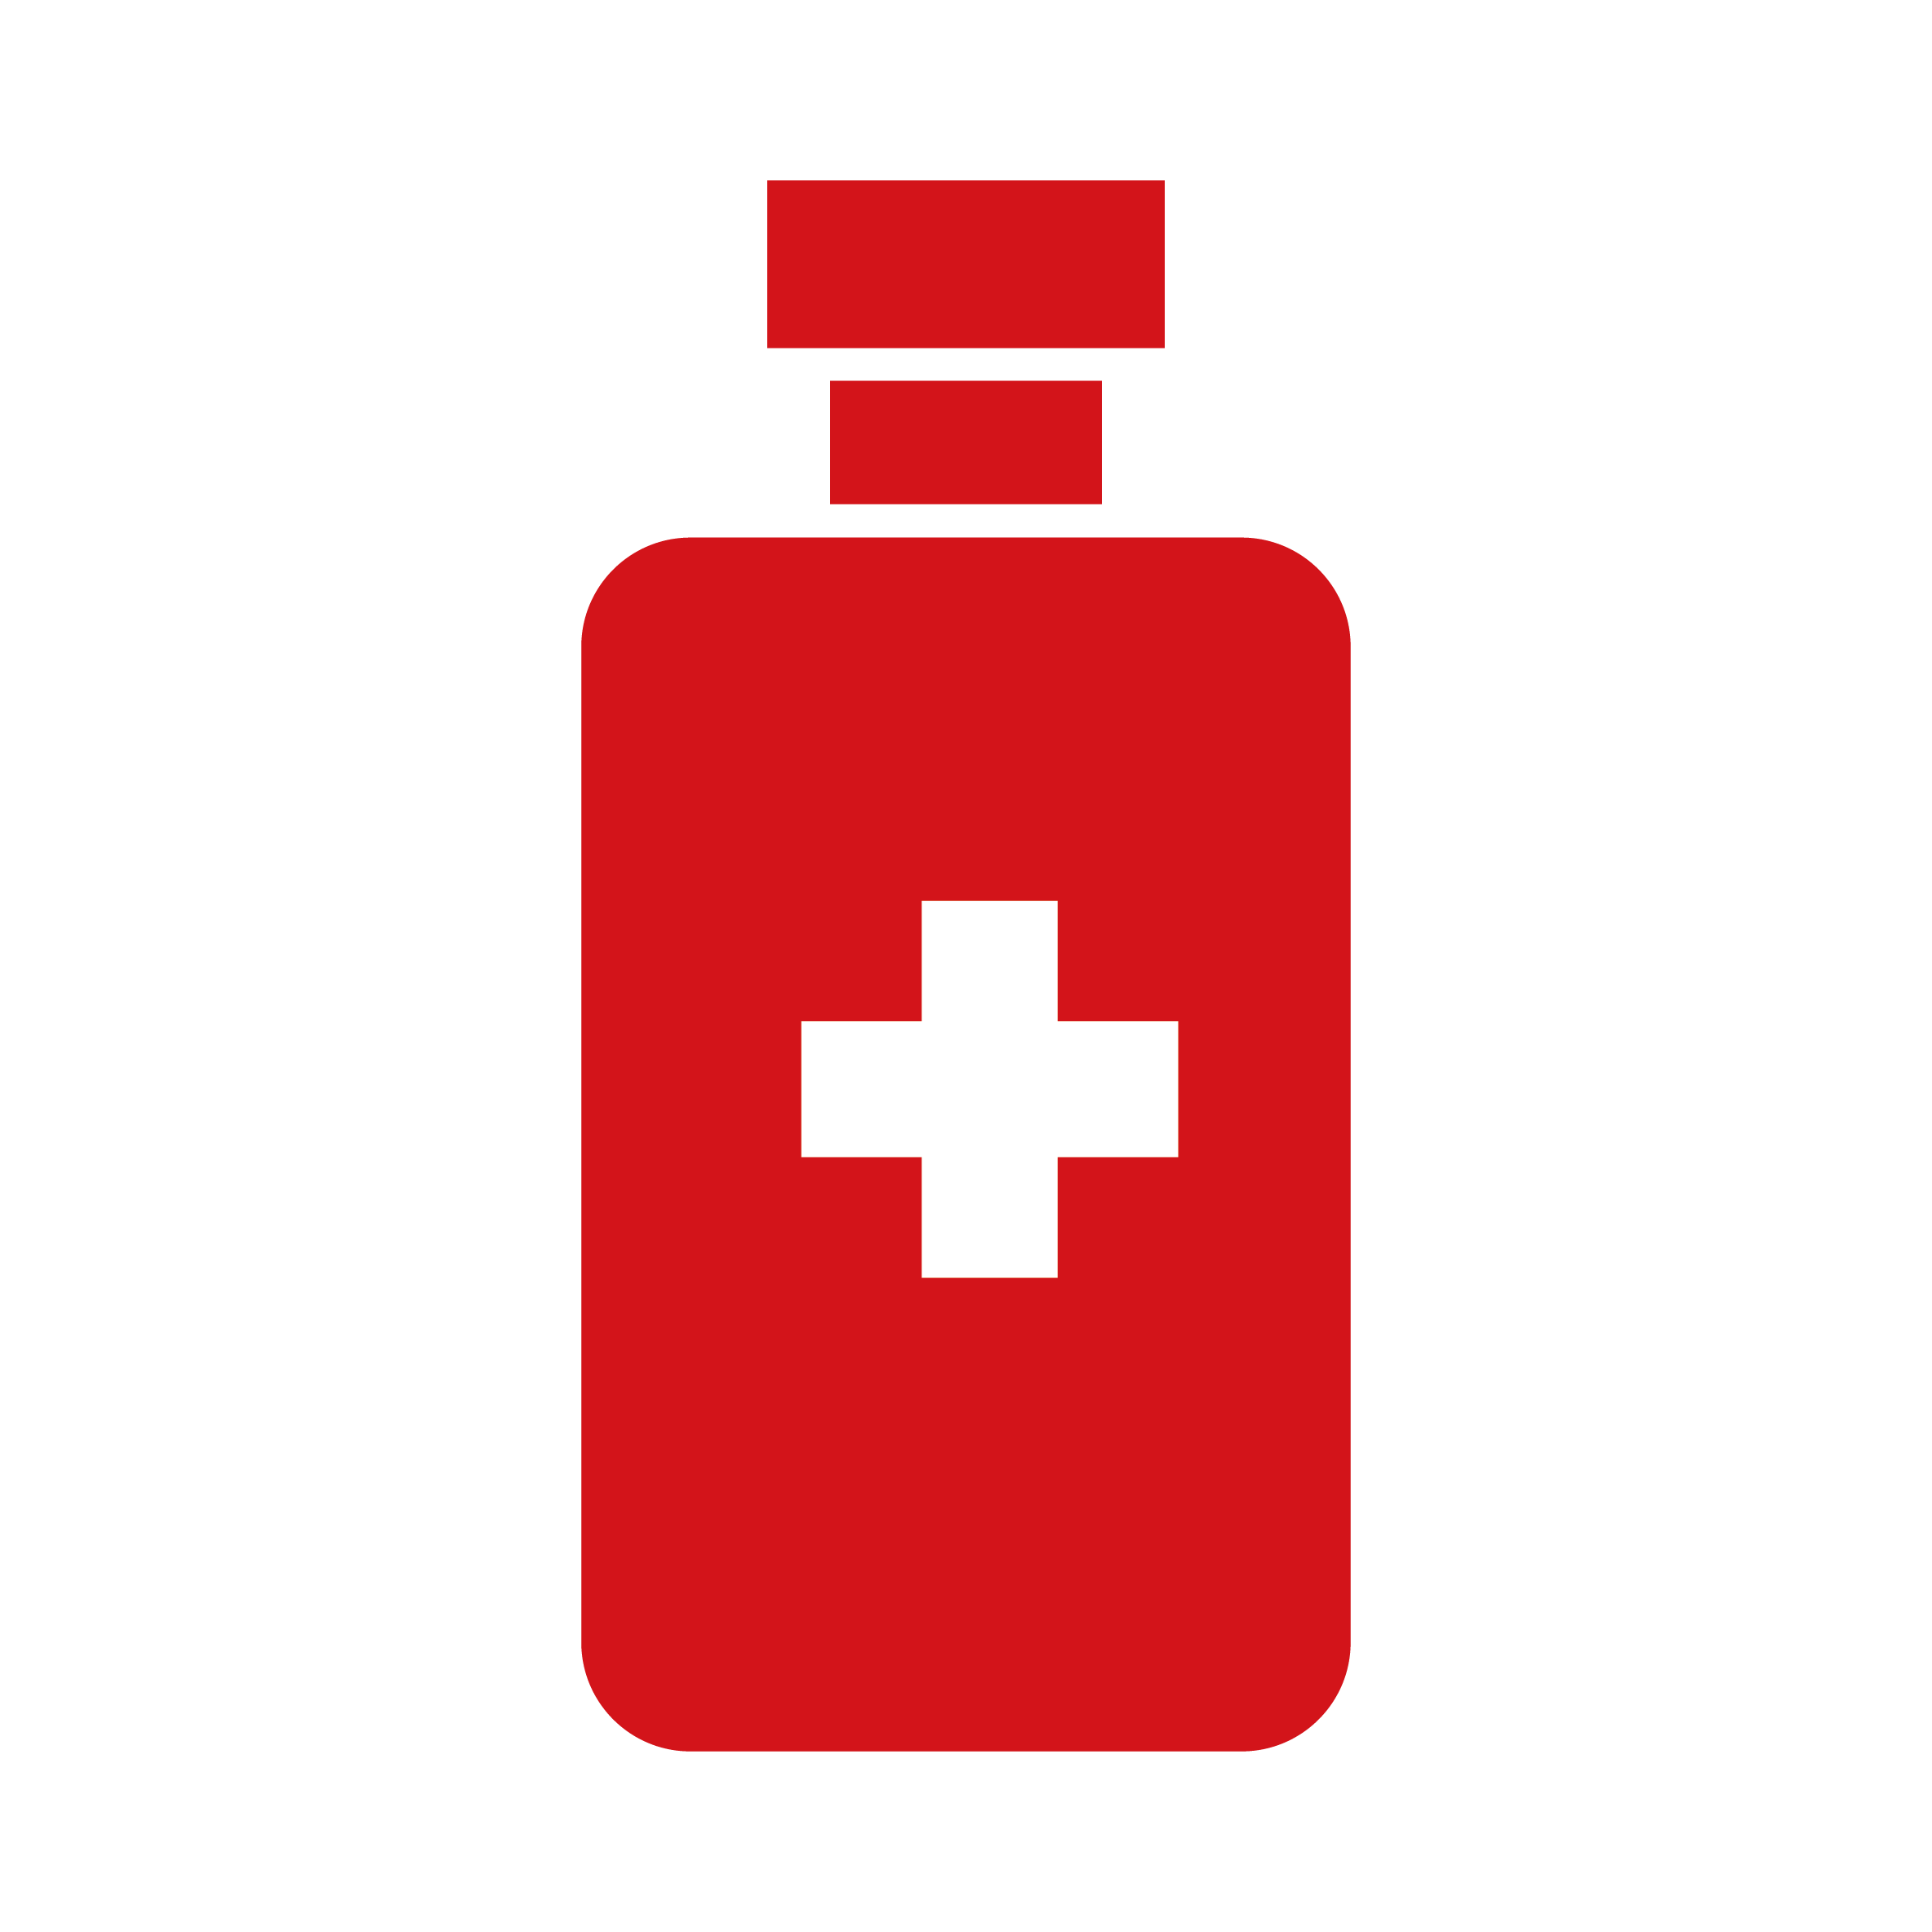 Medications icon